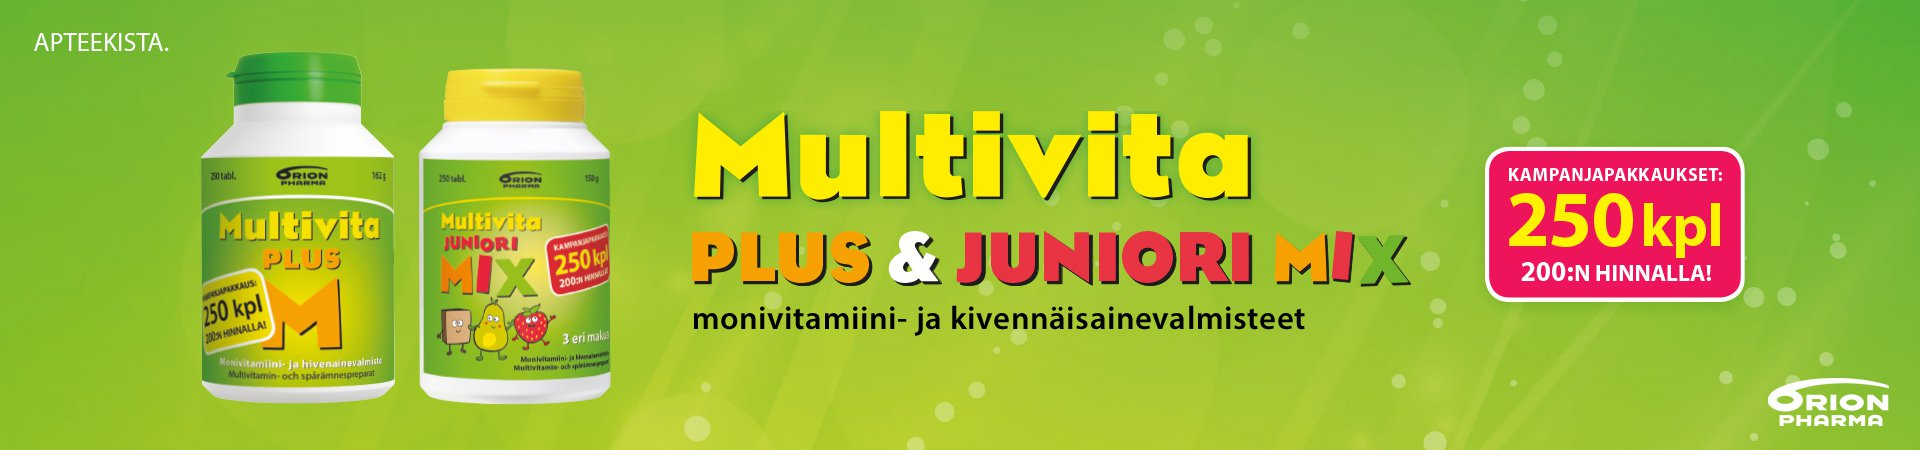 multivita monivitamiini multivita kampanjapakkaus orion monivitamiini